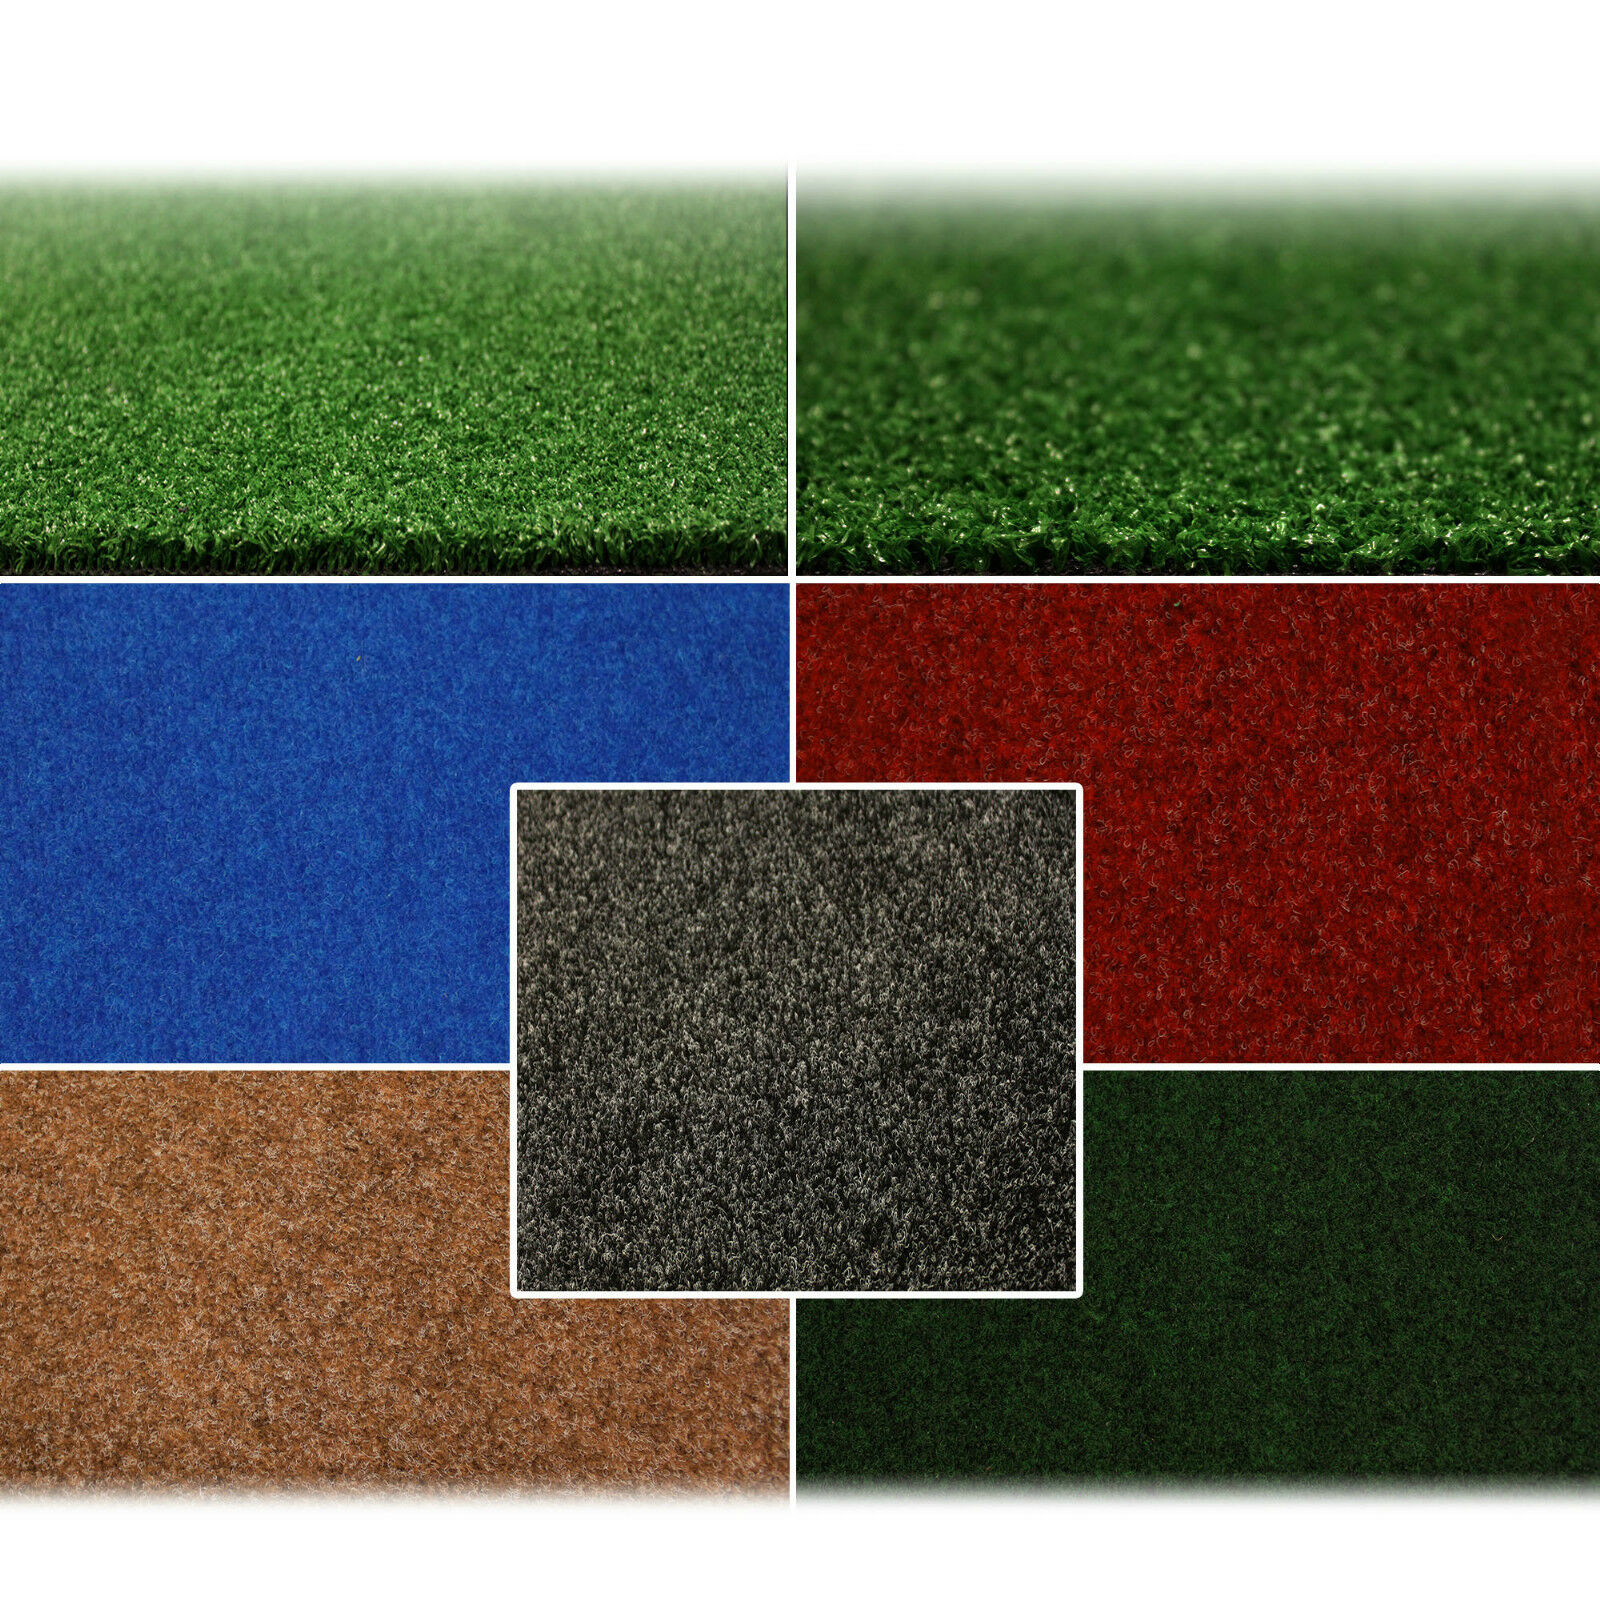 Outdoor flooring artificial grass carpet green blue for Discount indoor outdoor carpet